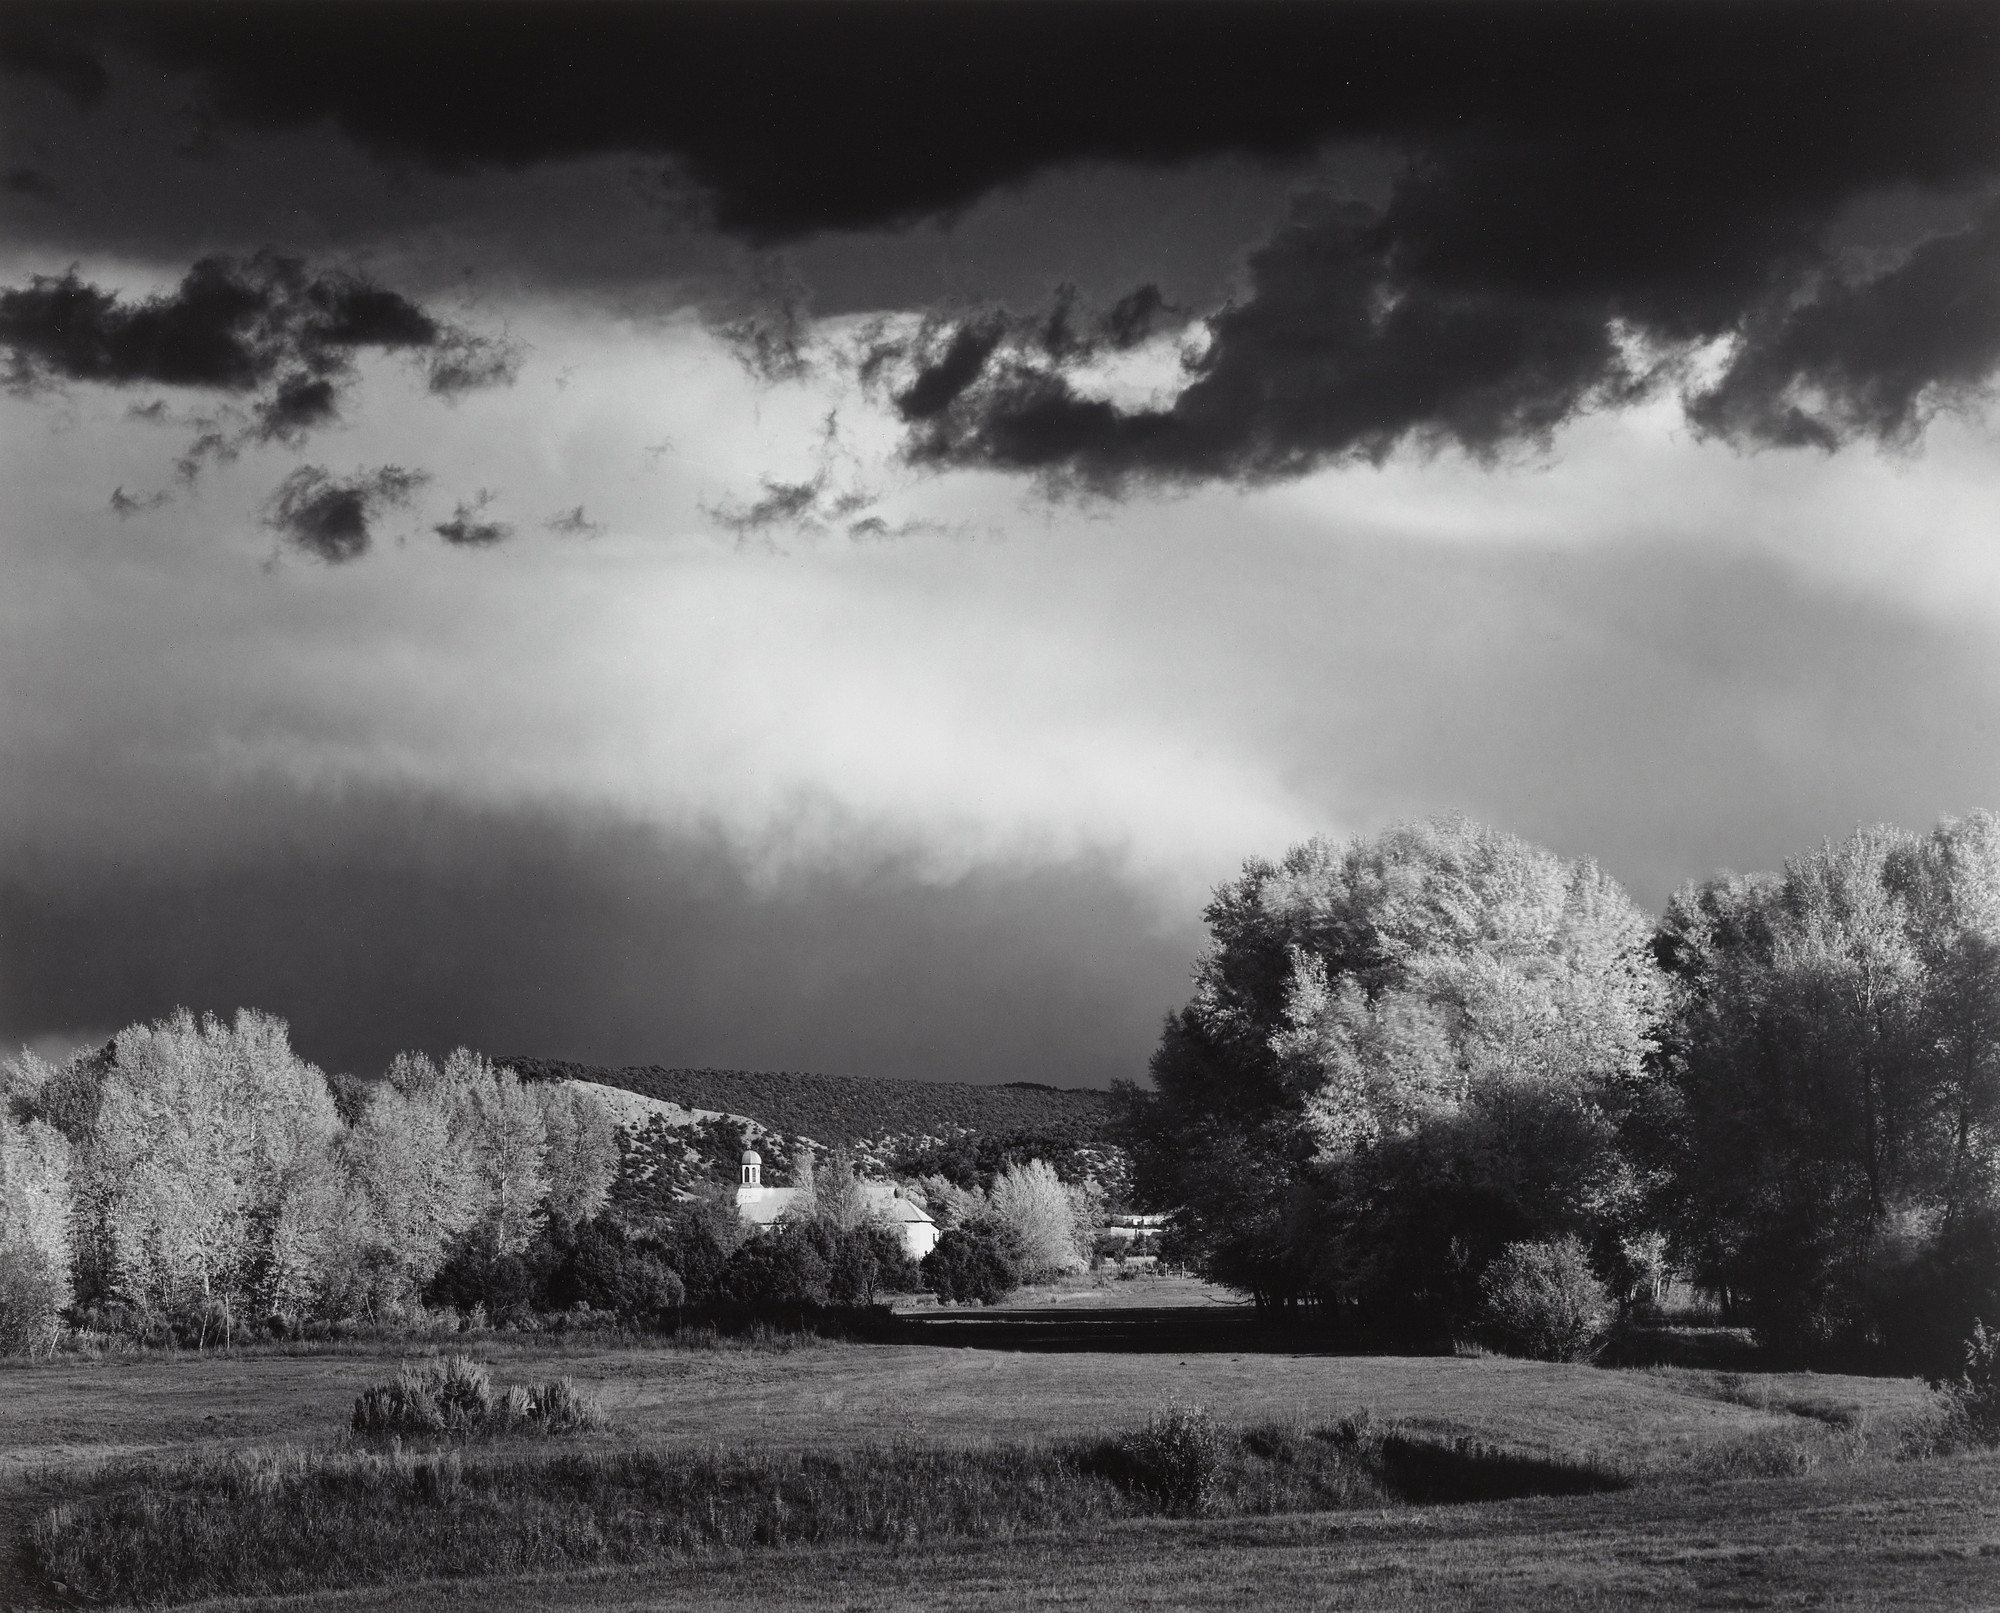 Ansel Adams. Autumn, Storm, near Peñasco, New Mexico. c. 1958 | MoMA